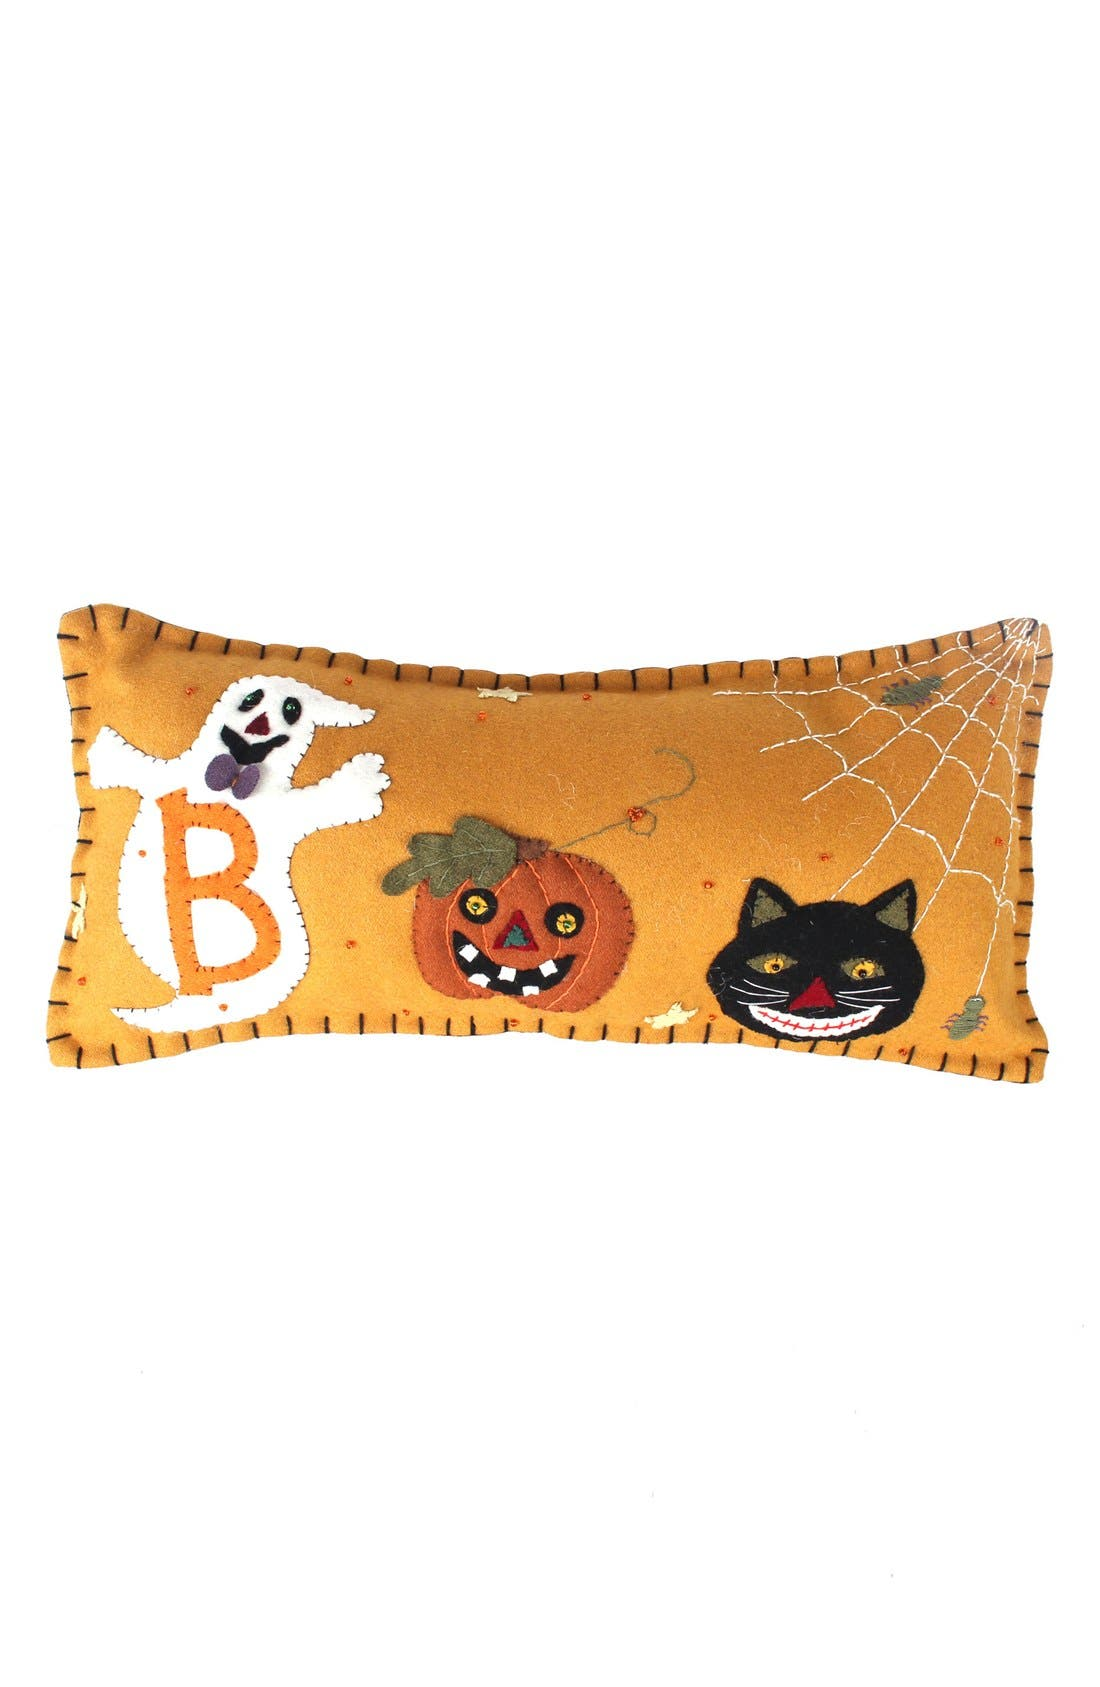 New World Arts Boo Accent Pillow